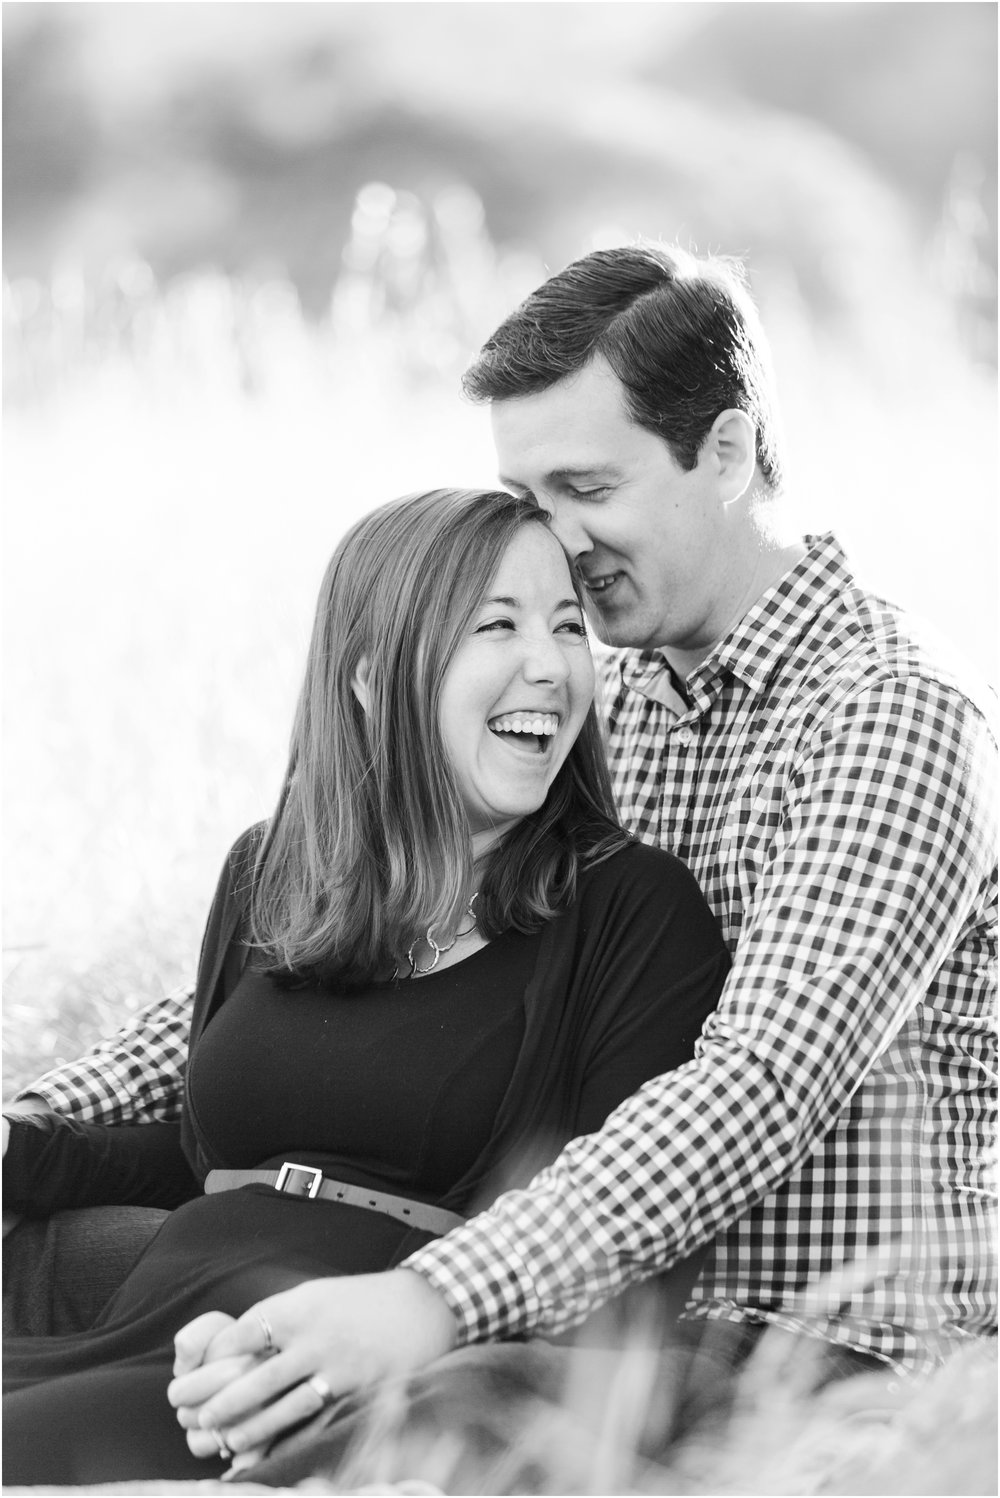 Engagement photos by Briana Calderon Photography based in the Greater Seattle & Tacoma, WA_0641.jpg